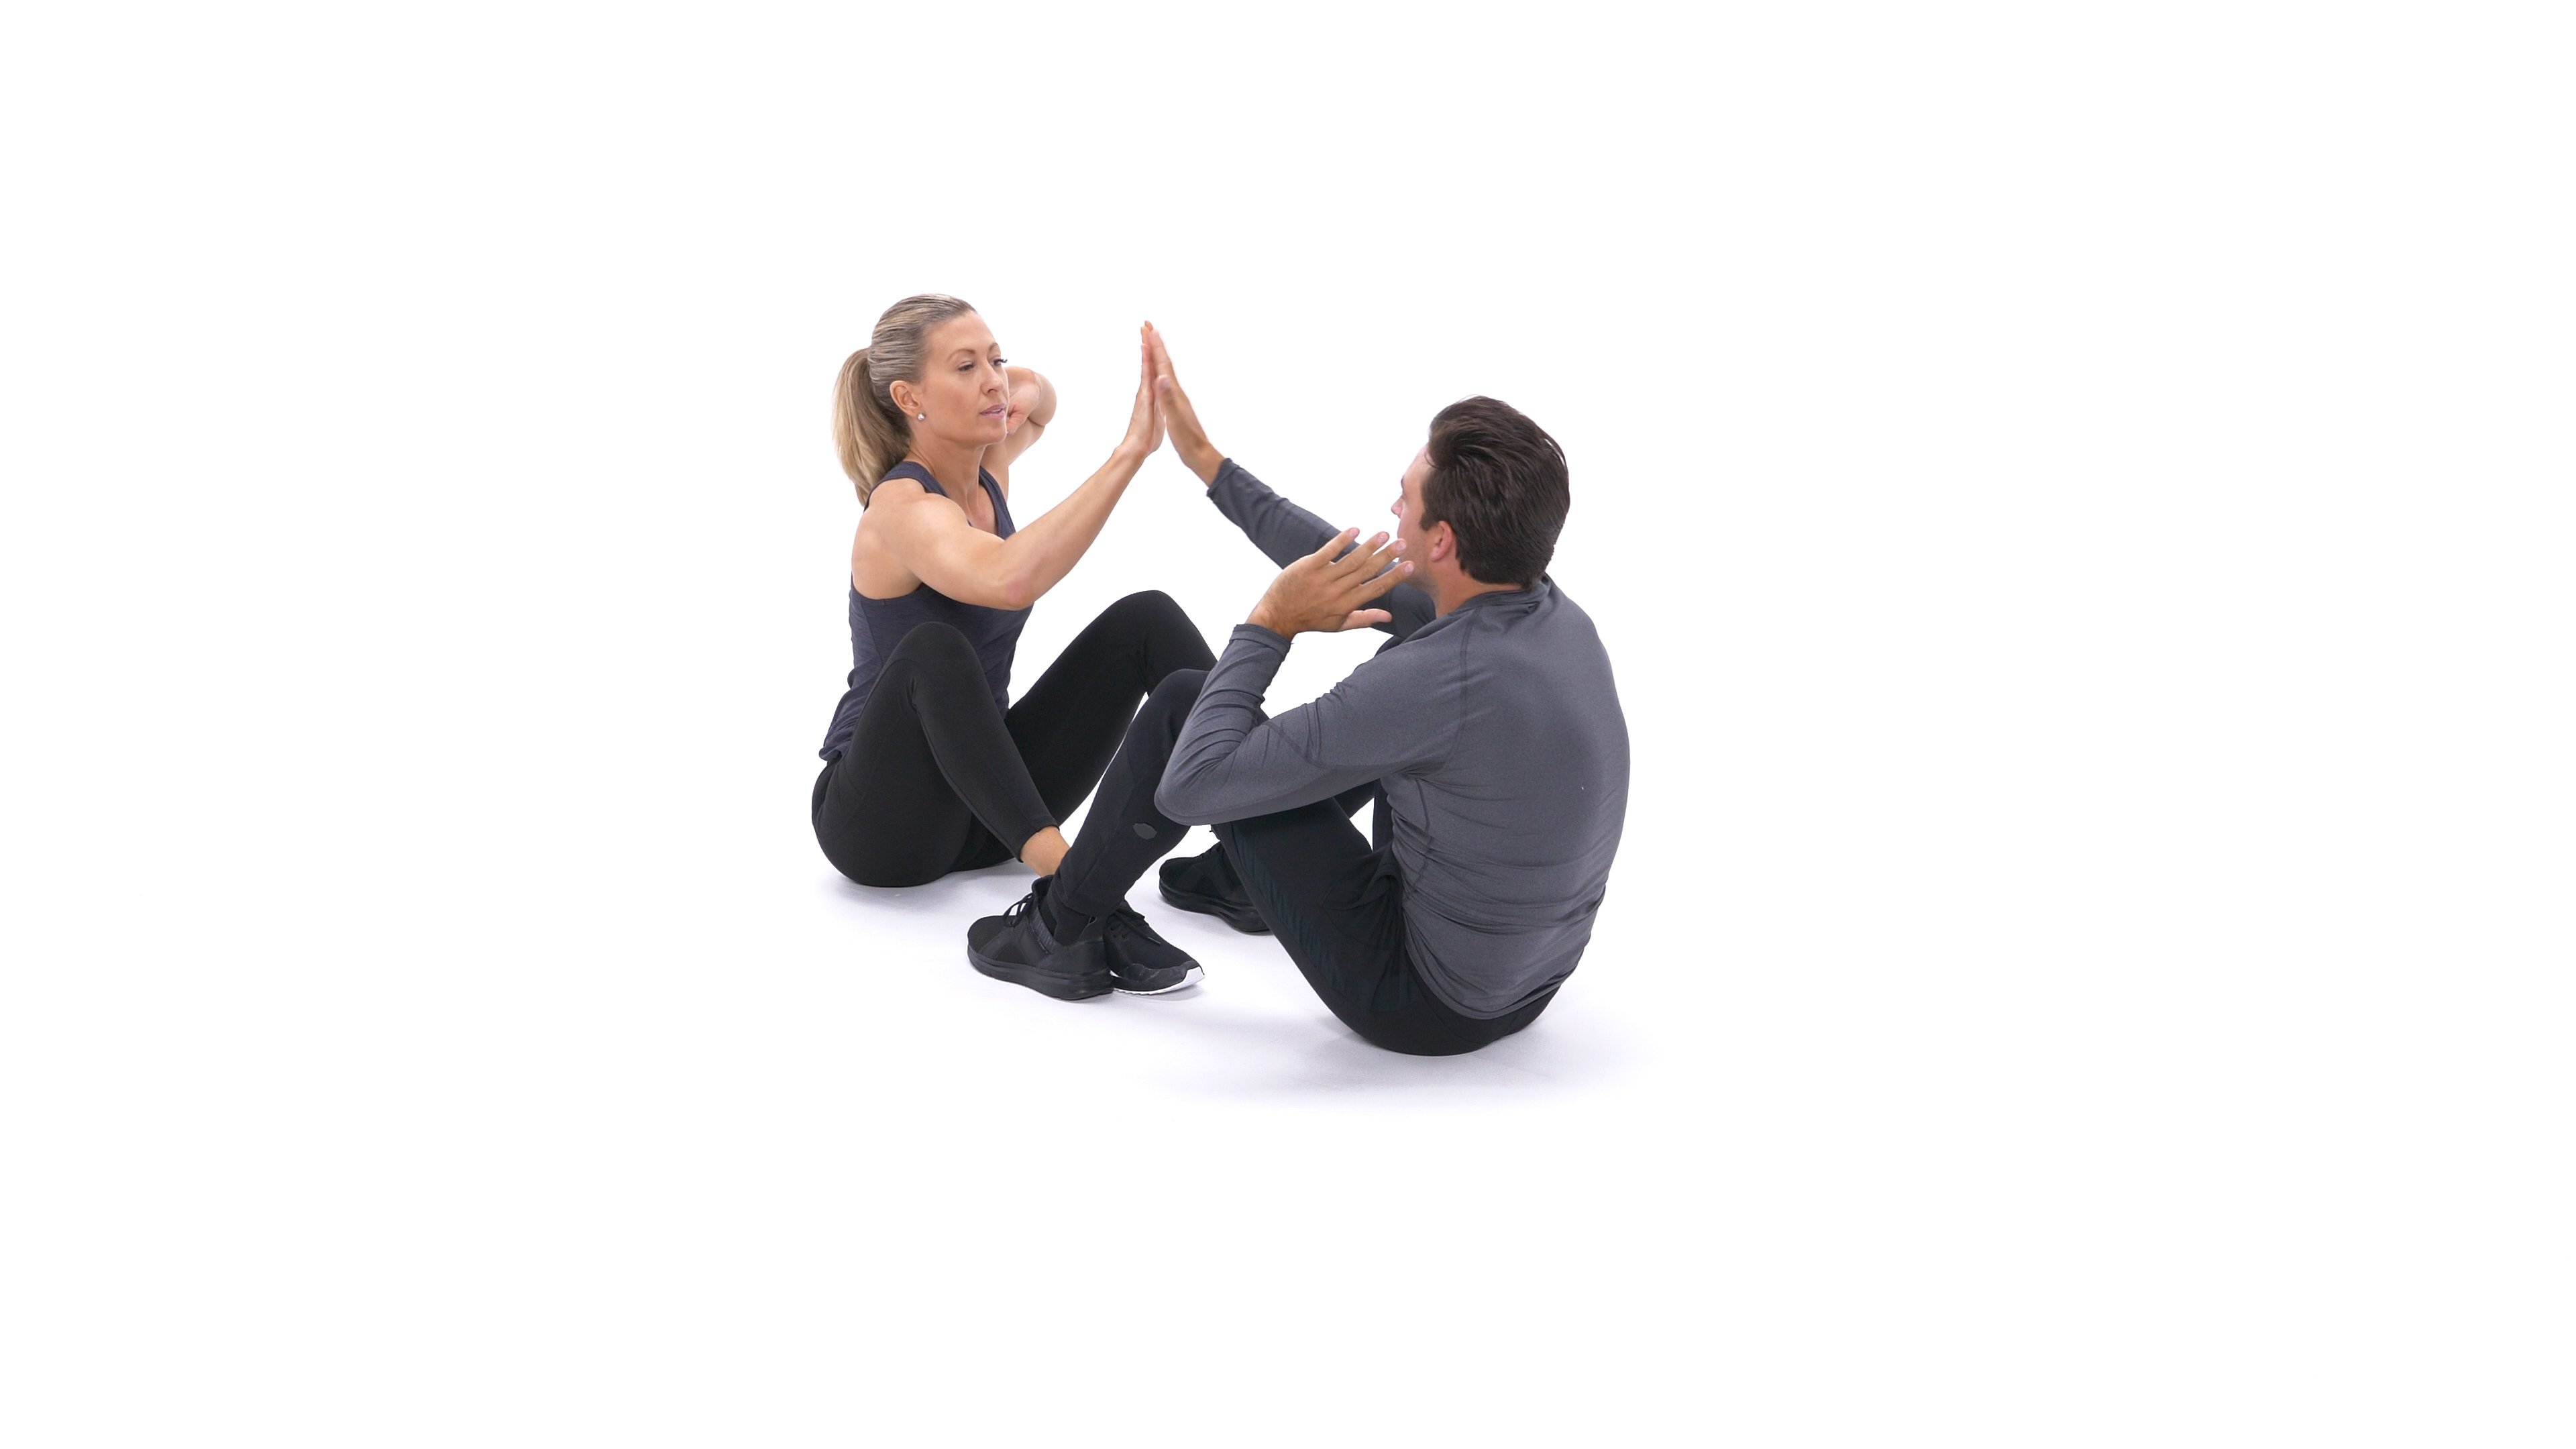 Partner sit-up with high-five- image